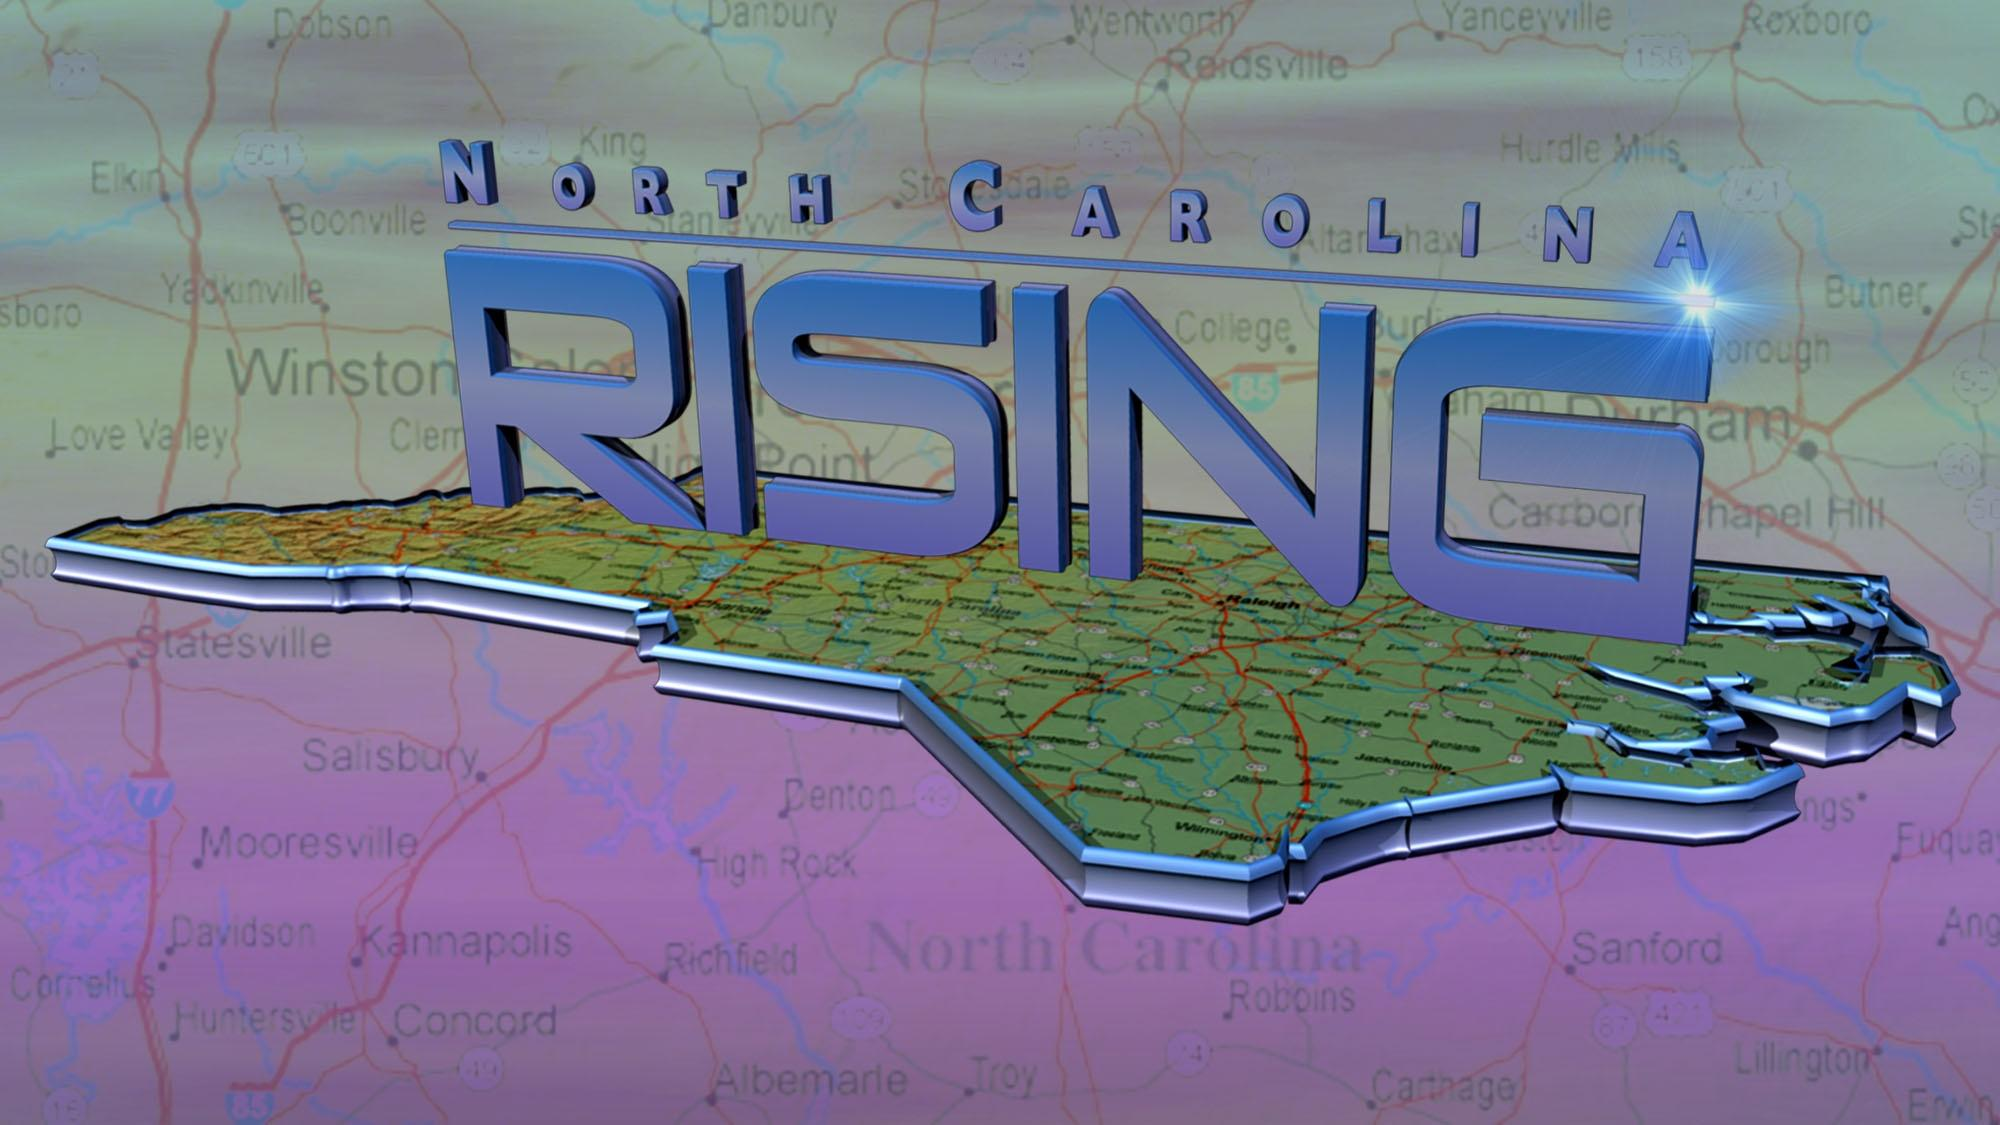 North Carolina Rising logo